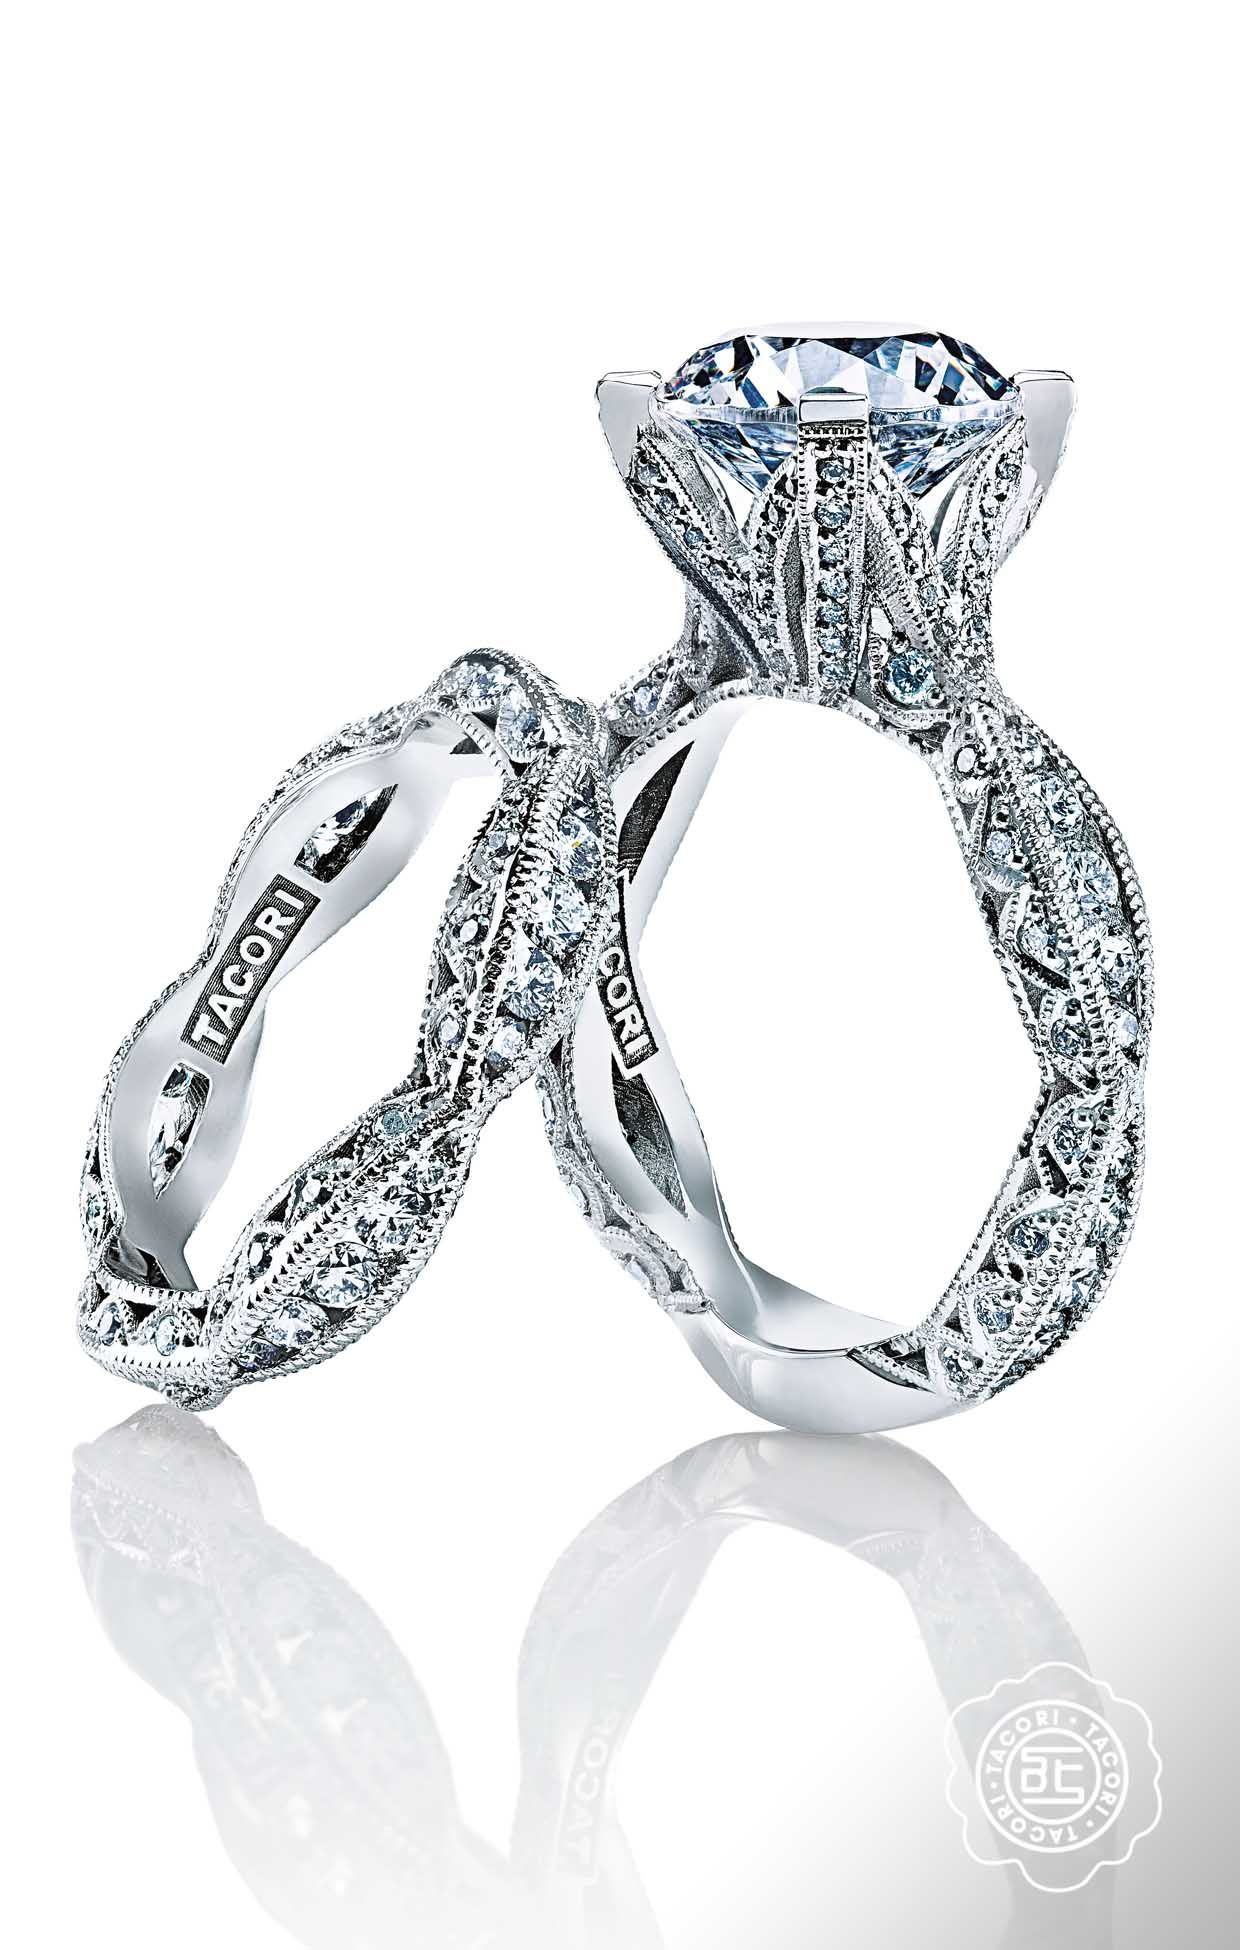 5d9f9a414 These just might be the prettiest engagement rings ever. The Tacori RoyalT  Collection. style no. HT2602RD95 + 2578B